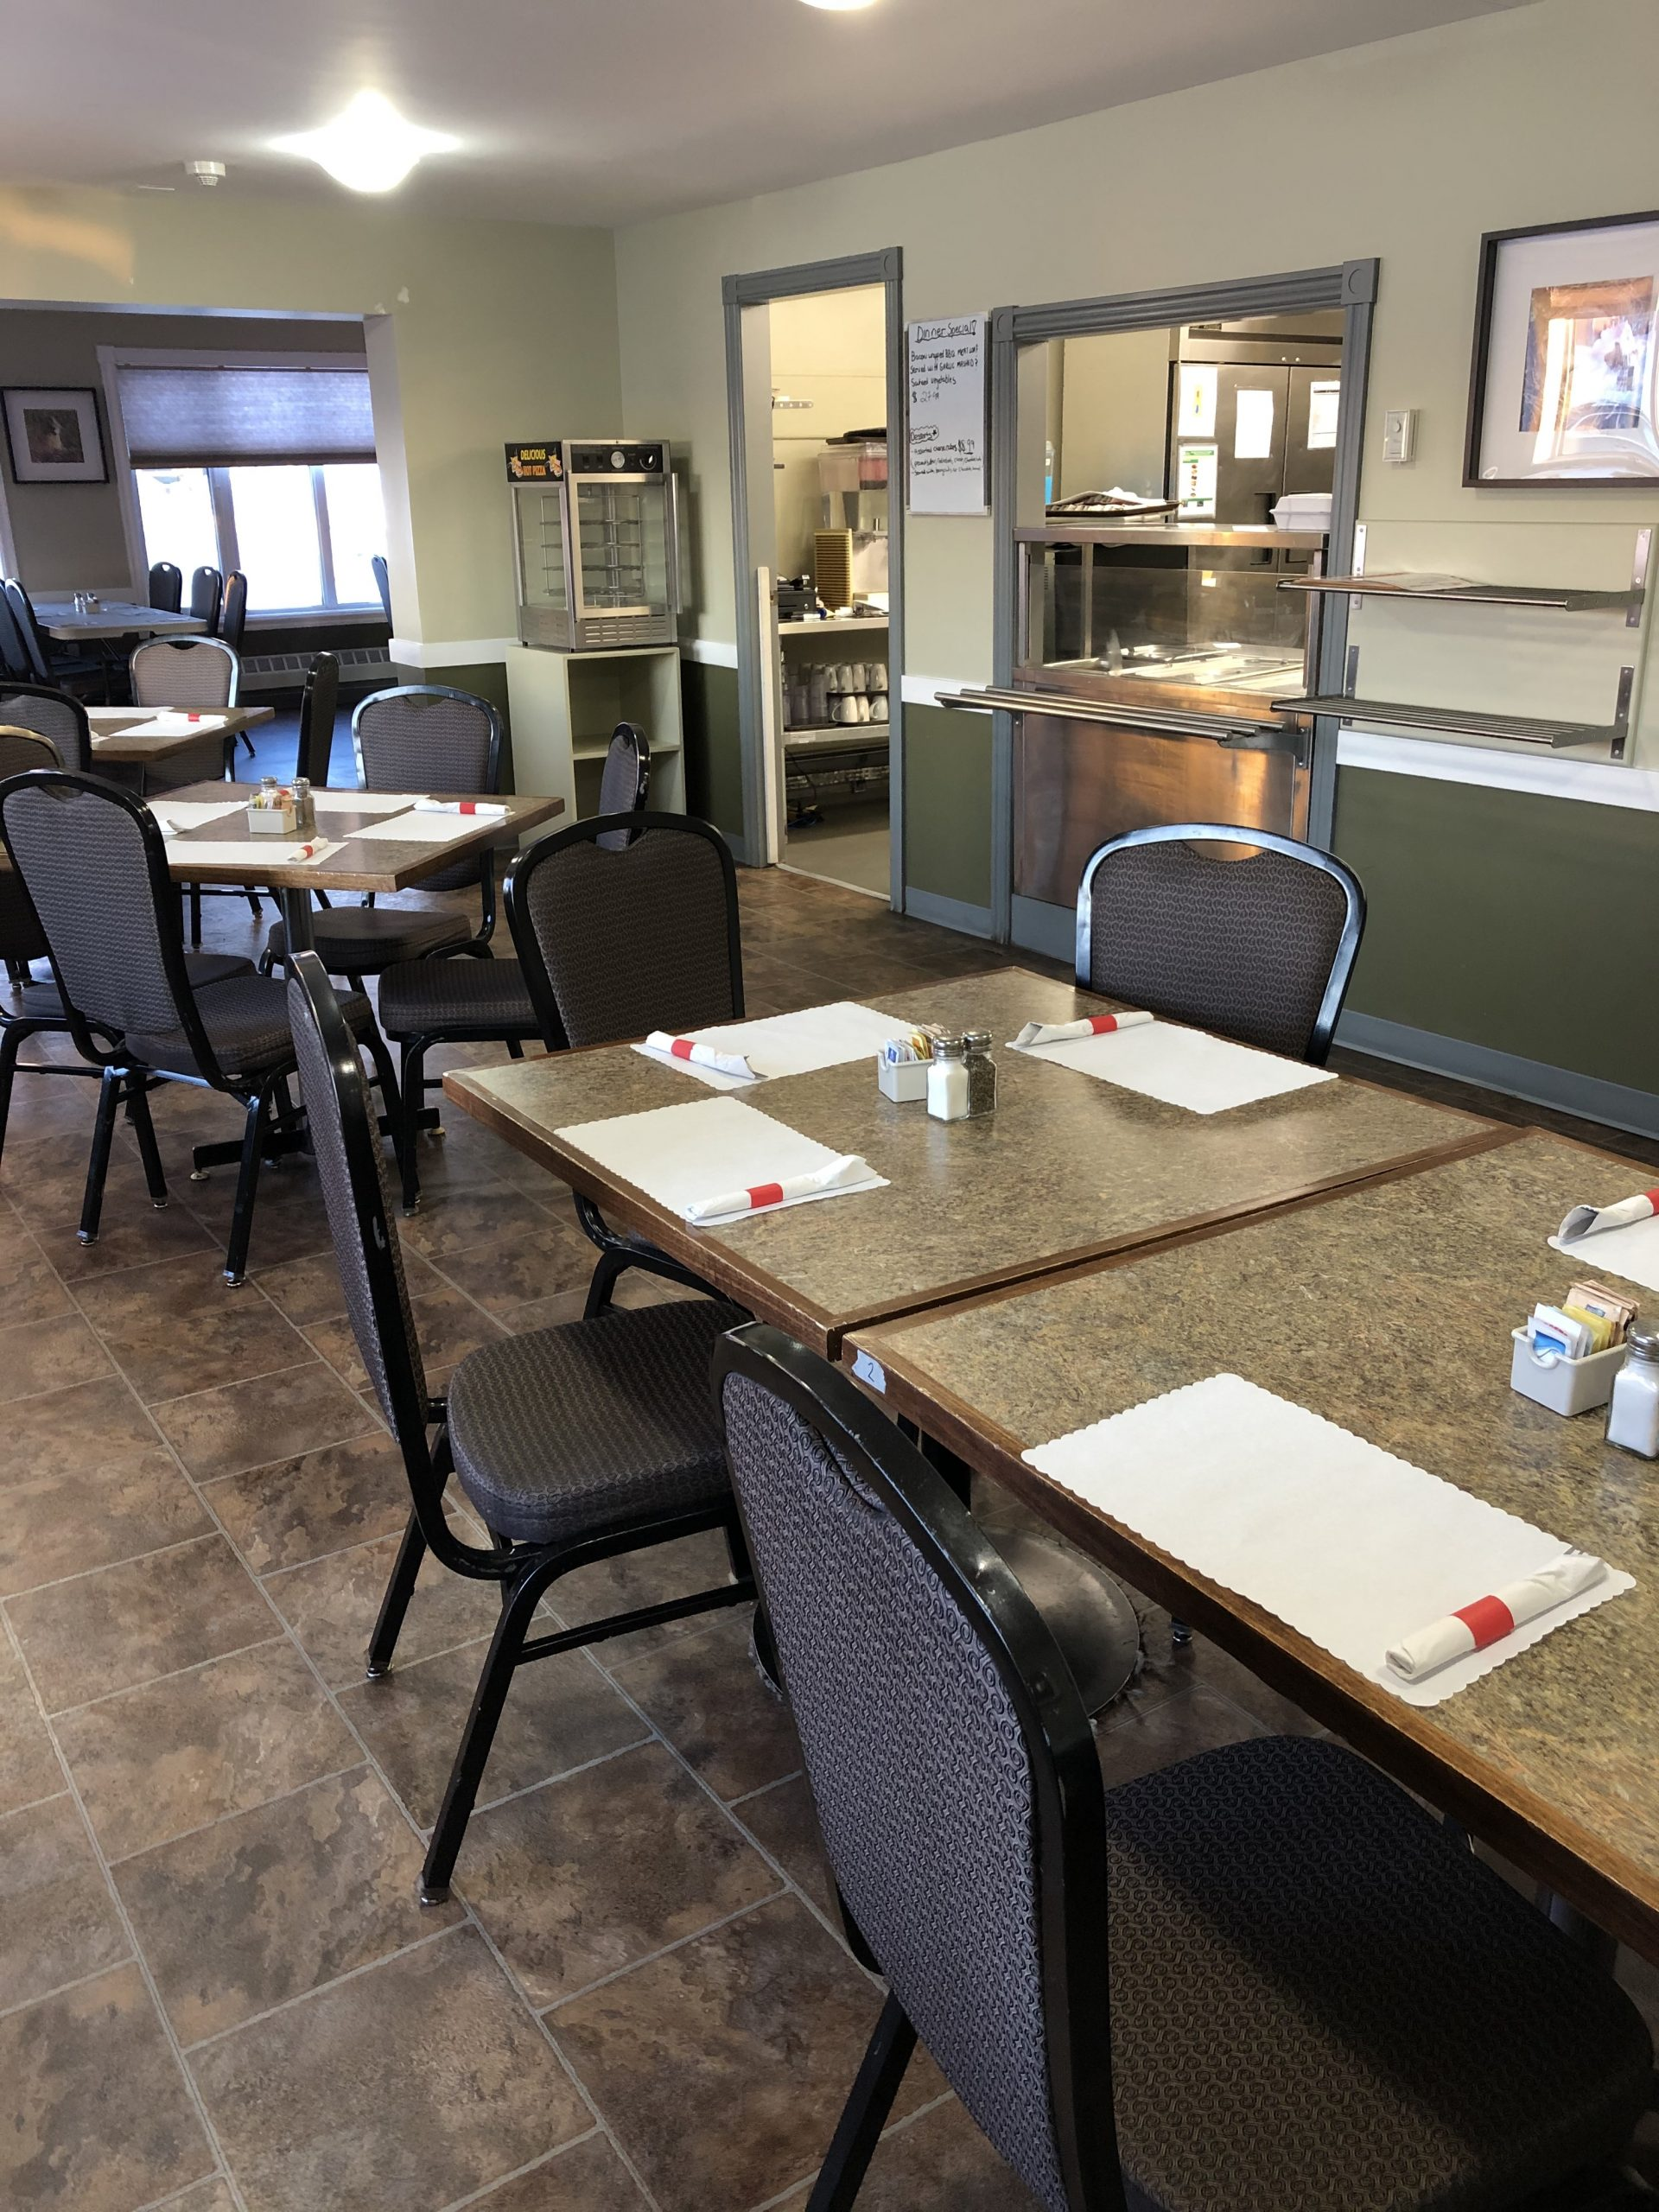 Aura Dining Room - Casual Everyday Dining